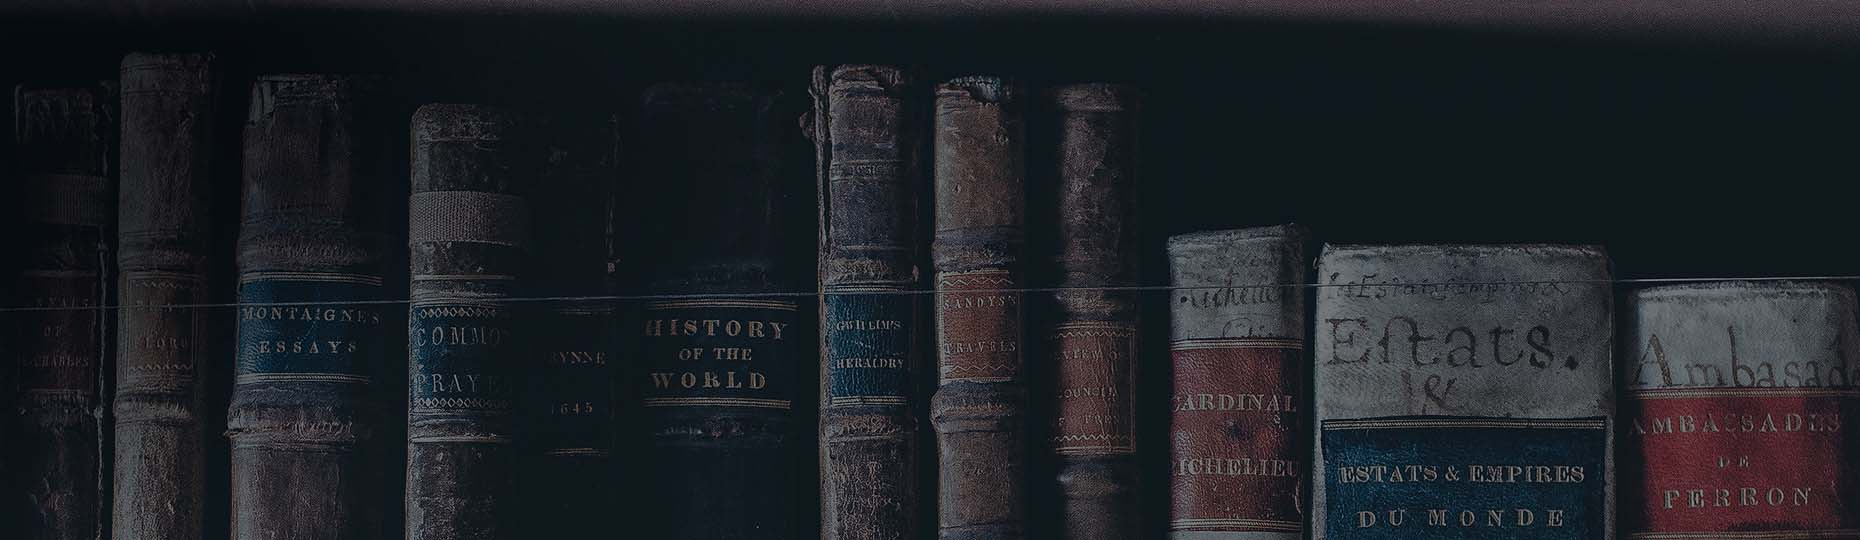 Old books are standing side by side